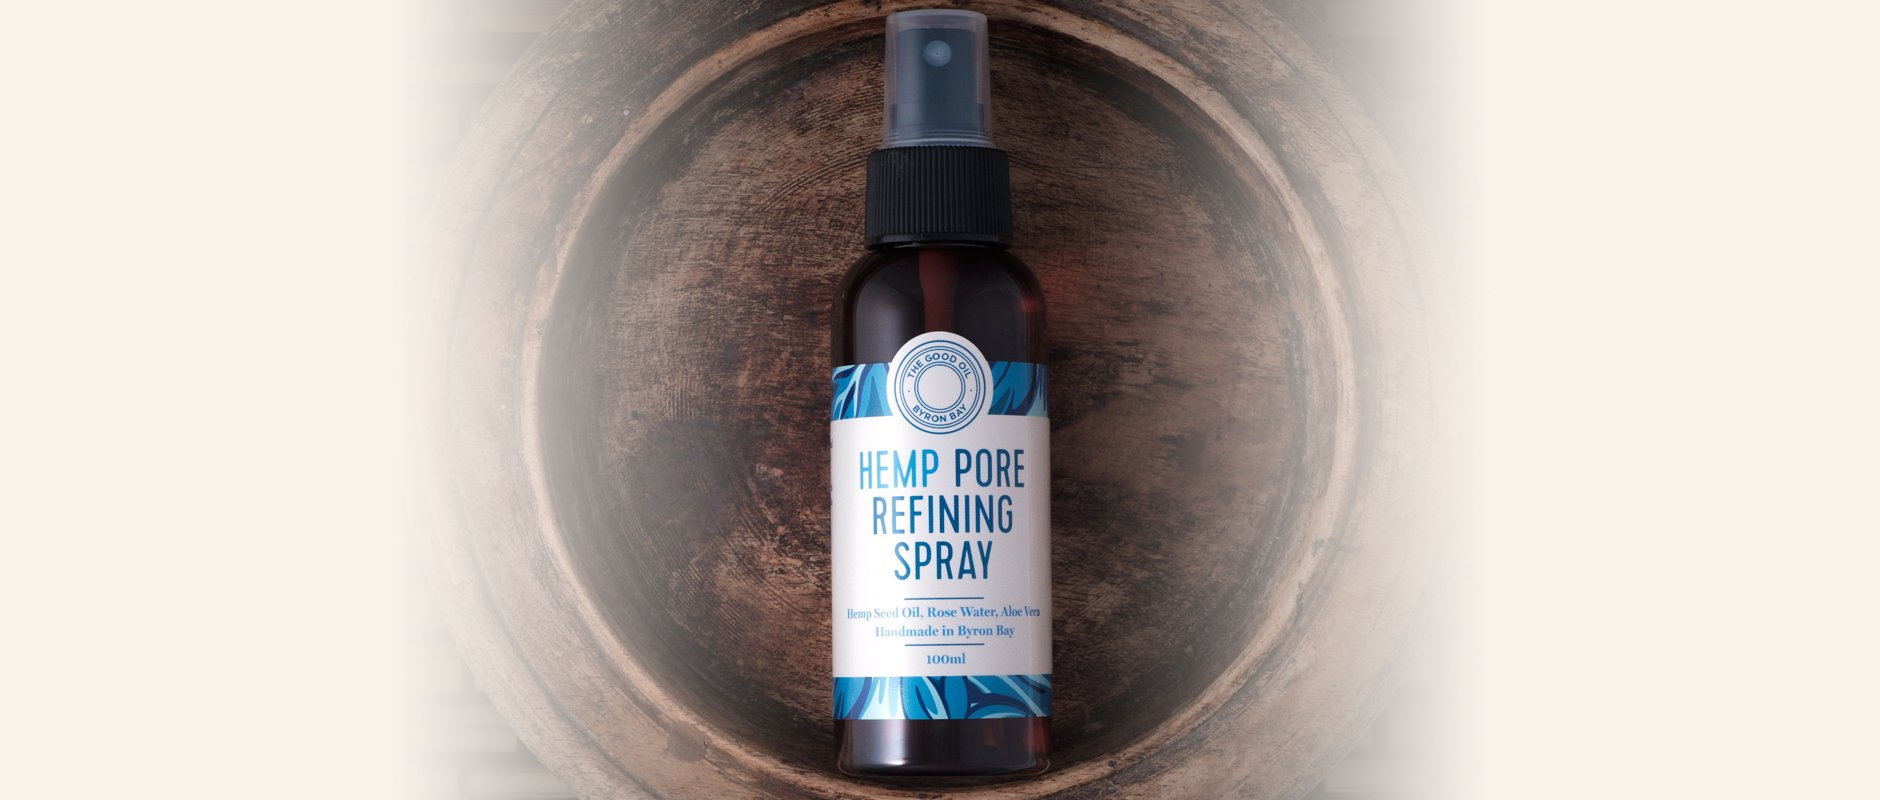 The Good Oil Hemp Pore Refining Spray